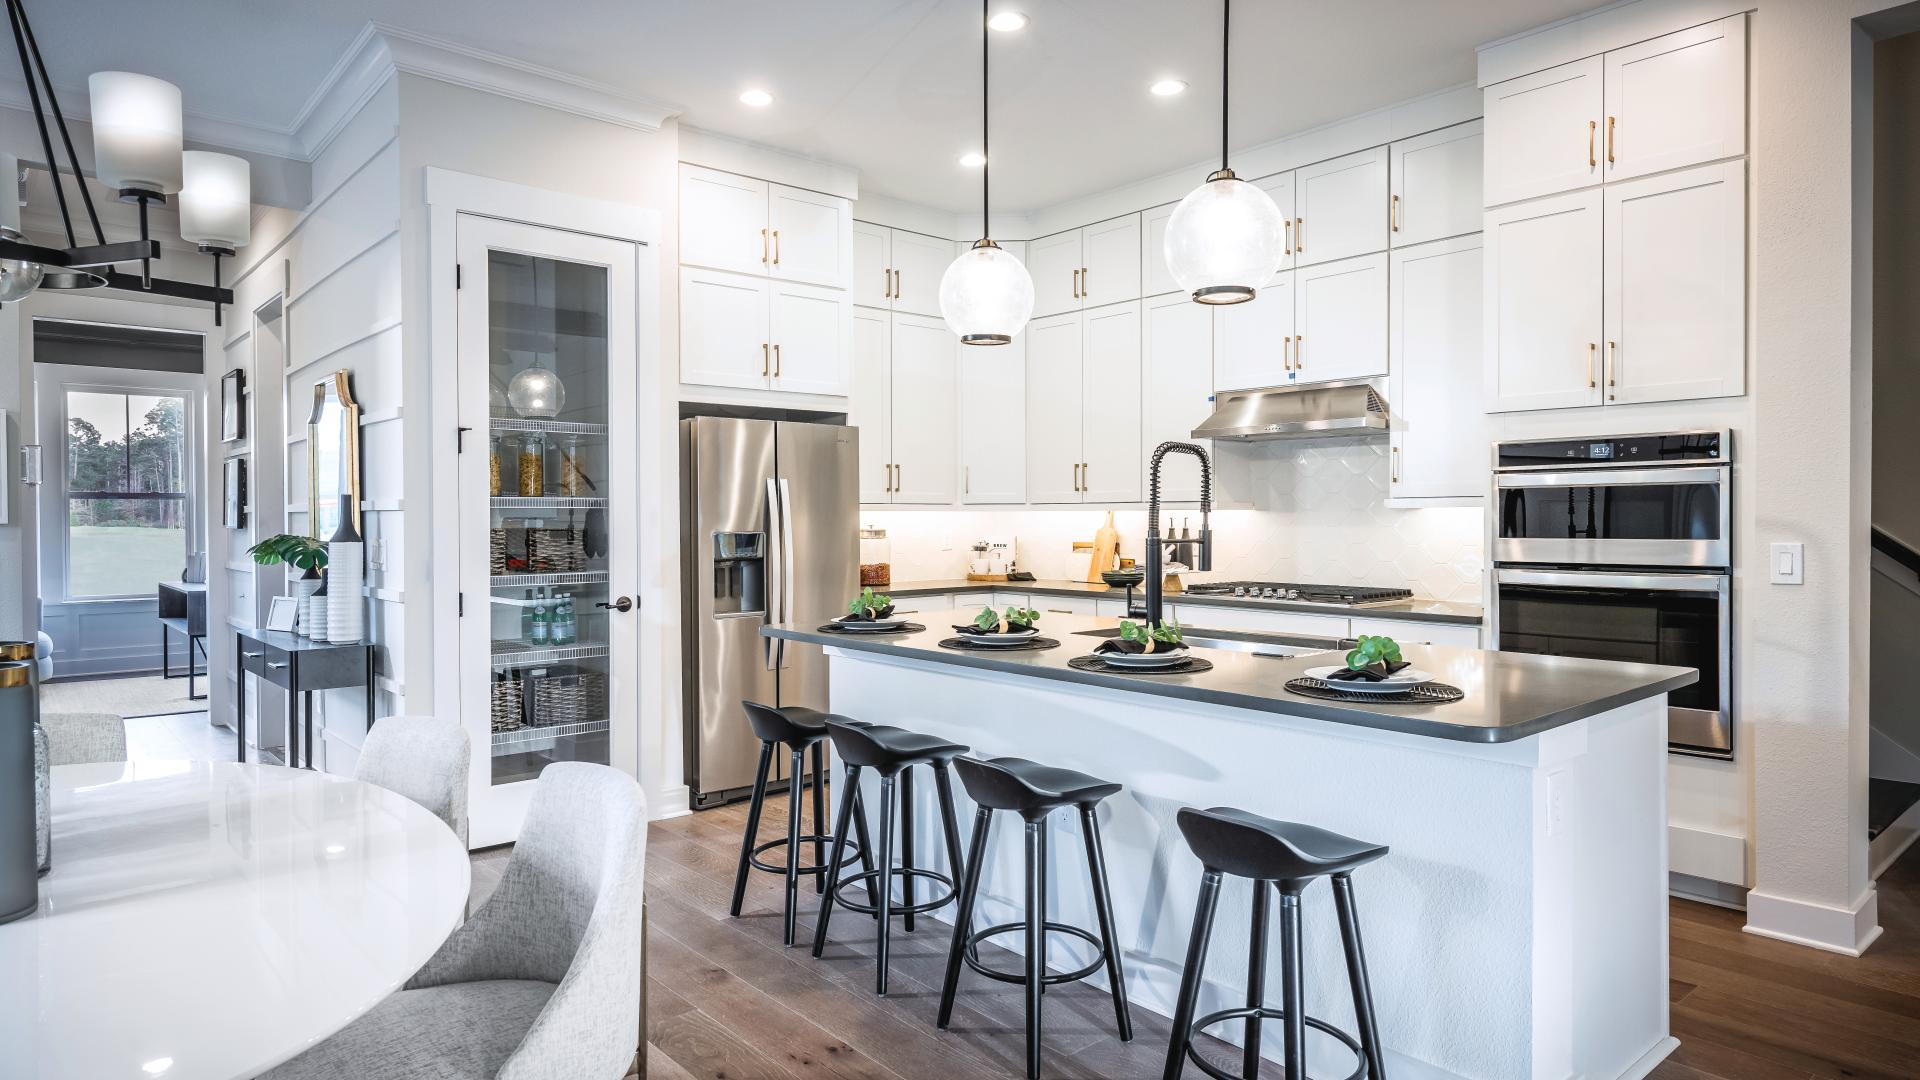 Well-appointed kitchens perfect for entertaining